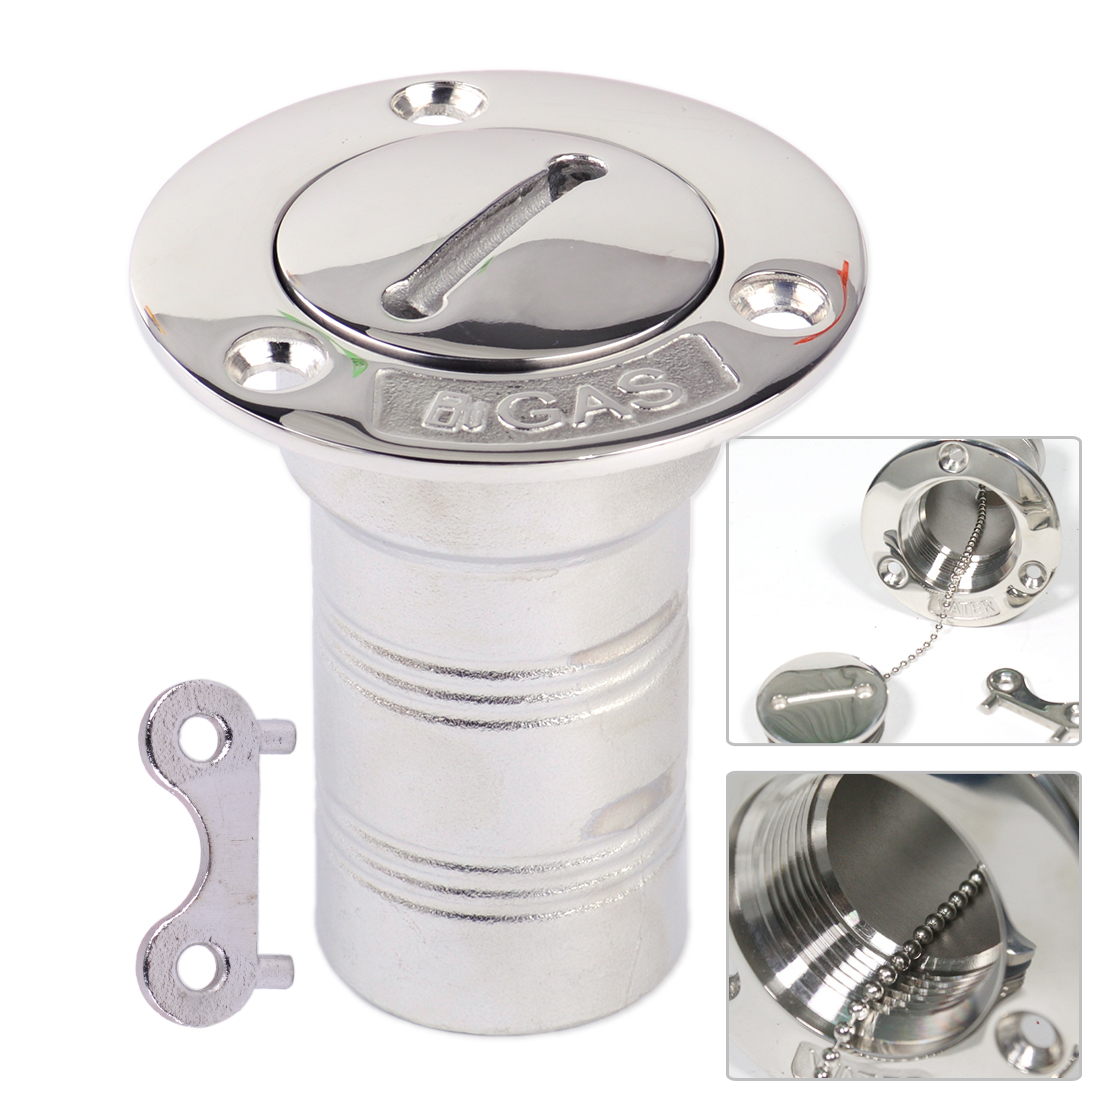 CITALL 1.5inch Silver Stainless Steel Boat Yachts Marine Campervans Trucks Deck Gas Fuel Tank Filler With Cap And Key